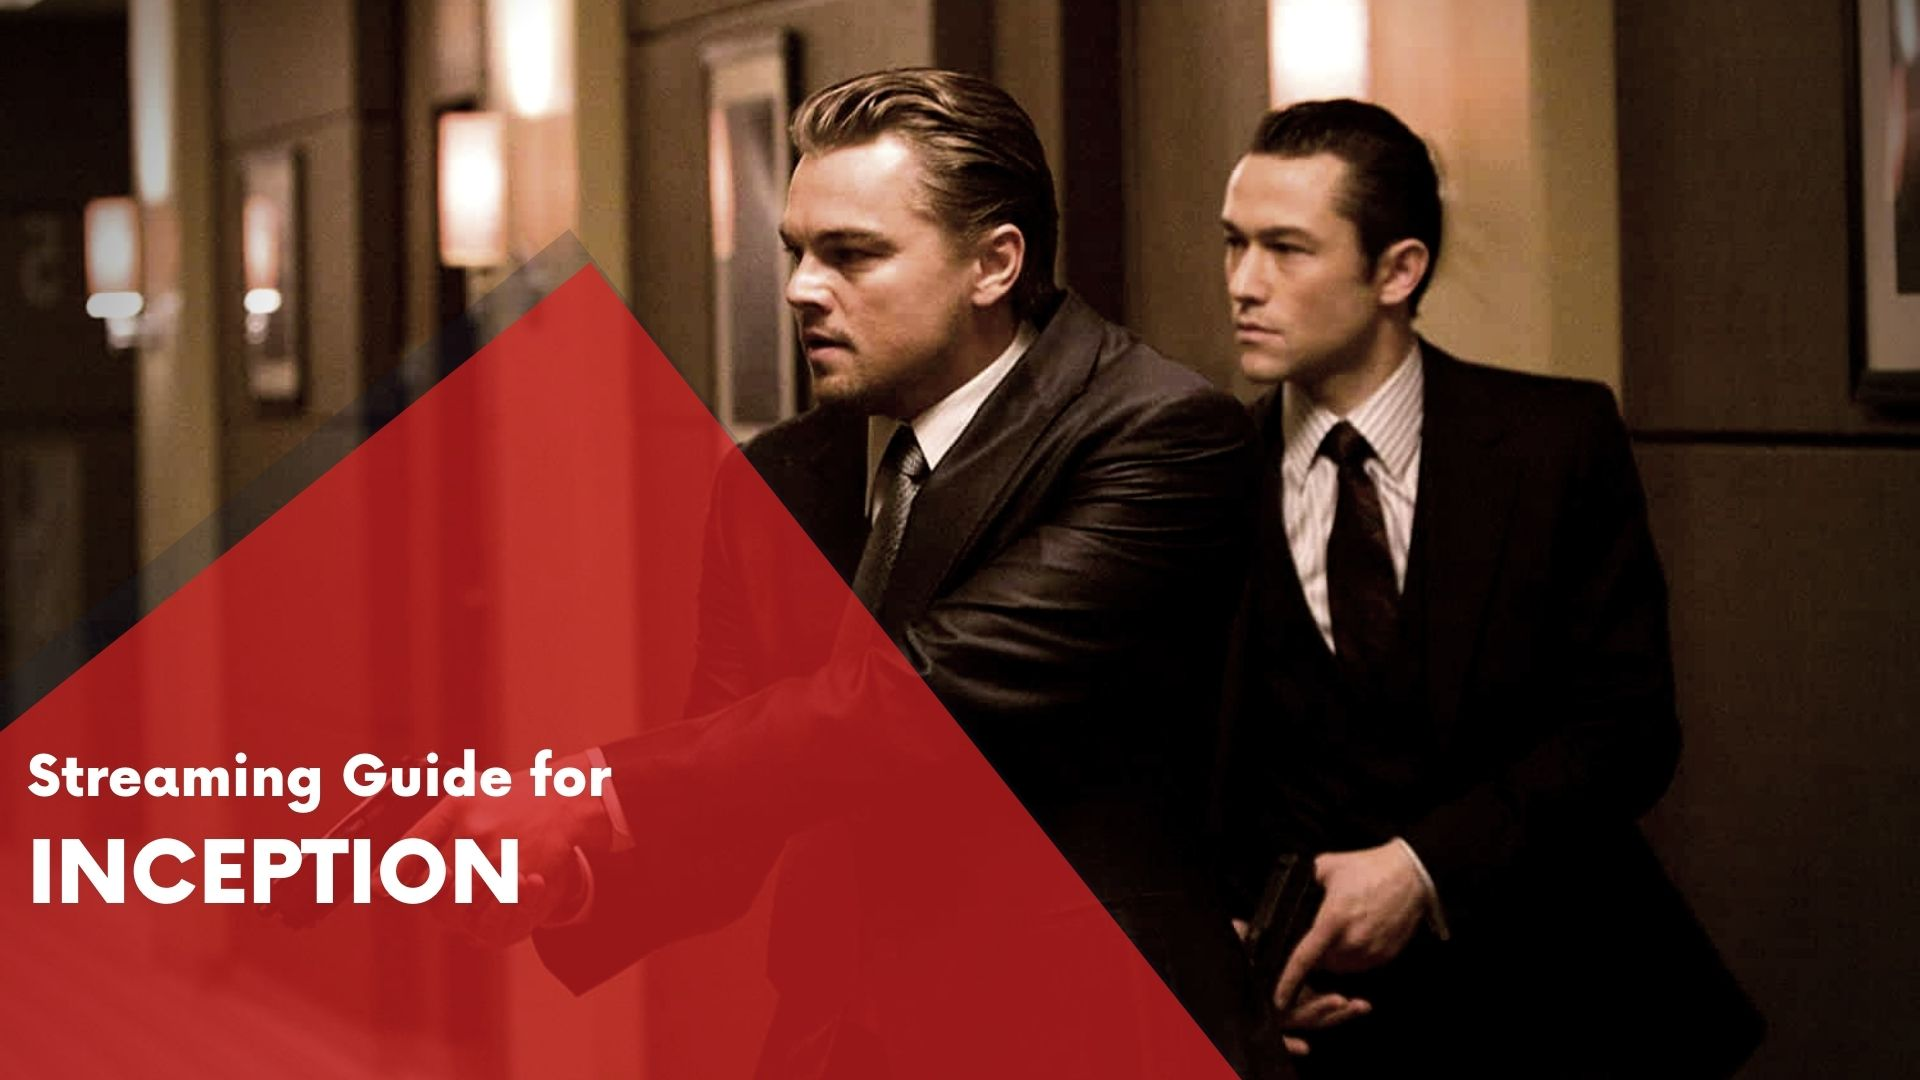 Answering if Inception can be watched online on Hulu